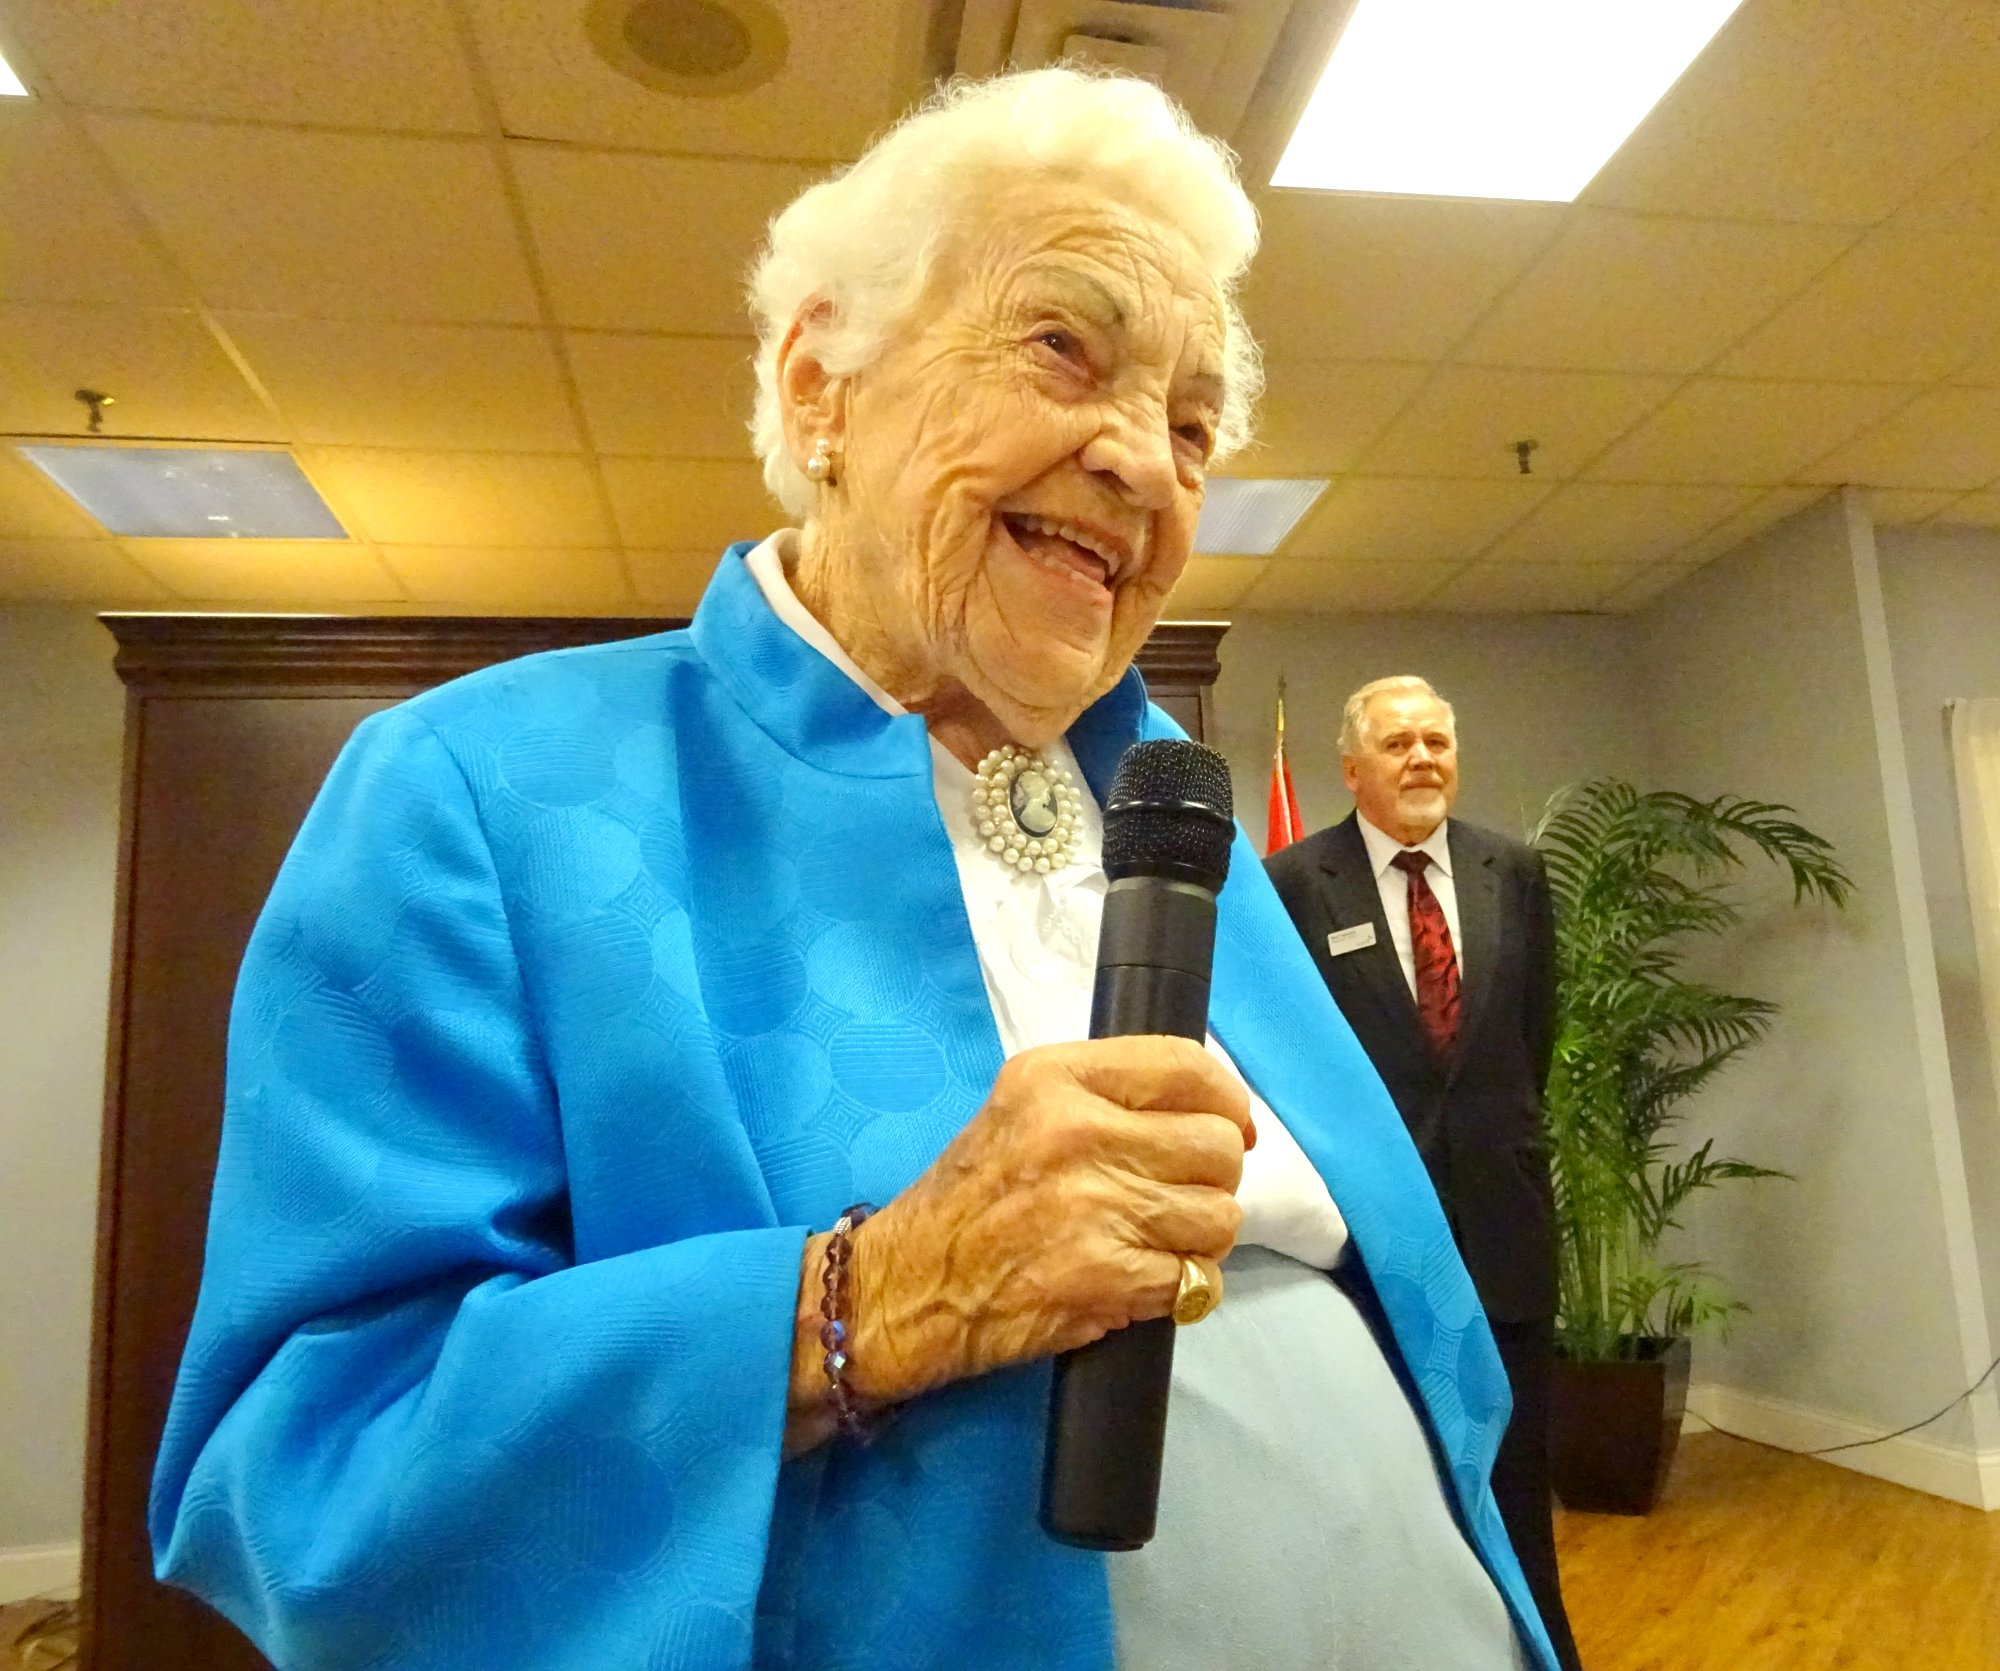 Hazel McCallion speaks at King Gardens 13 September 2016 Photo by I Lee